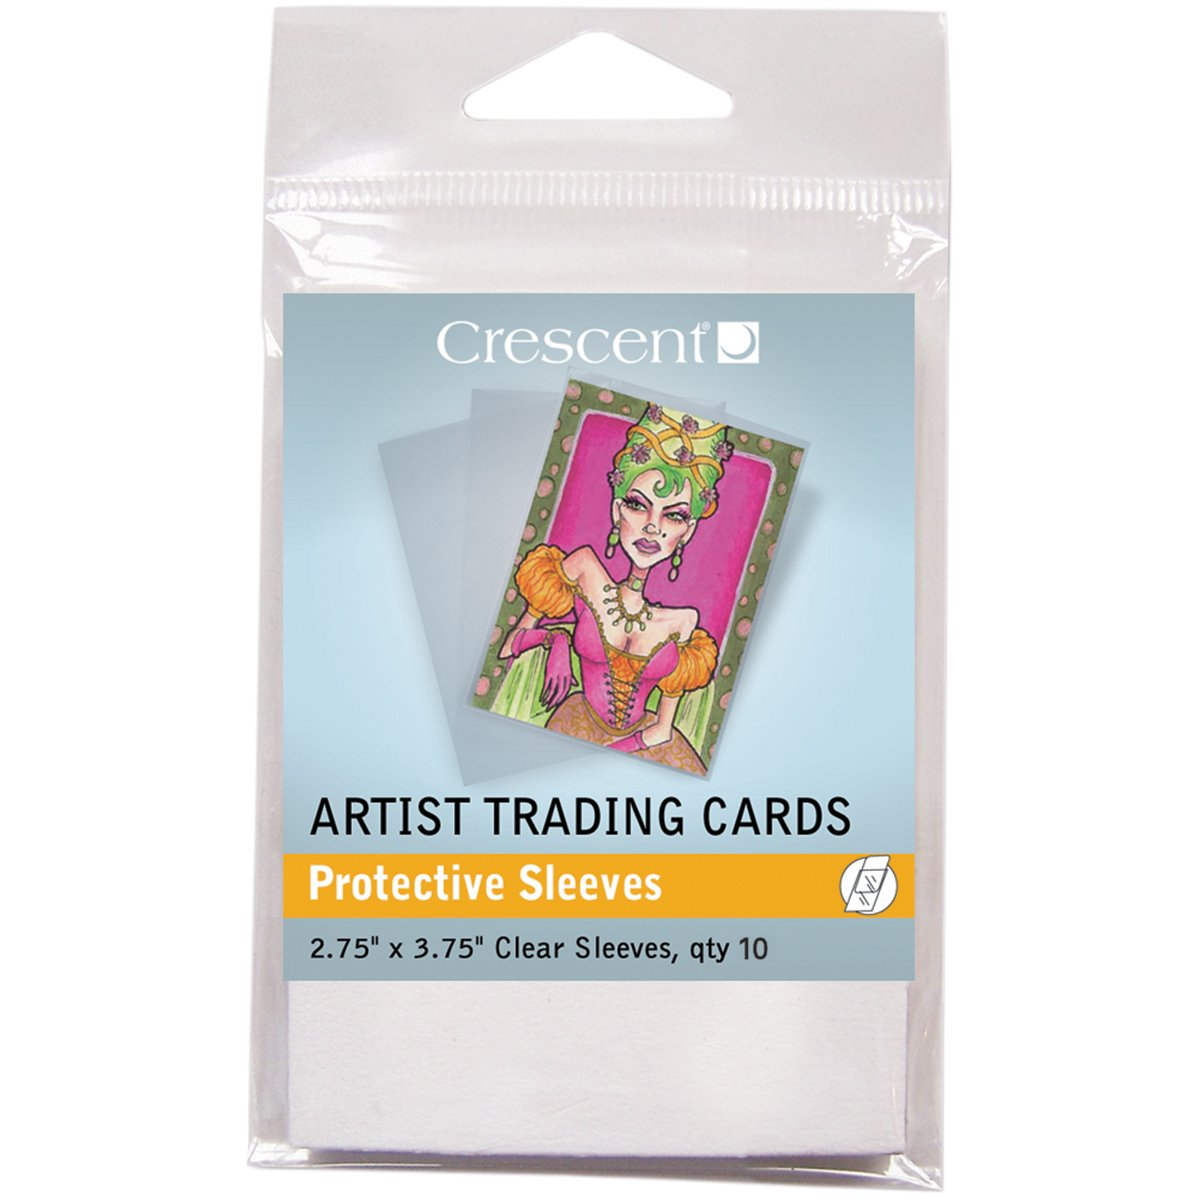 Crescent Protective Sleeves for Artist Trading Cards, Pack of 10 by Crescent Cardboard Co